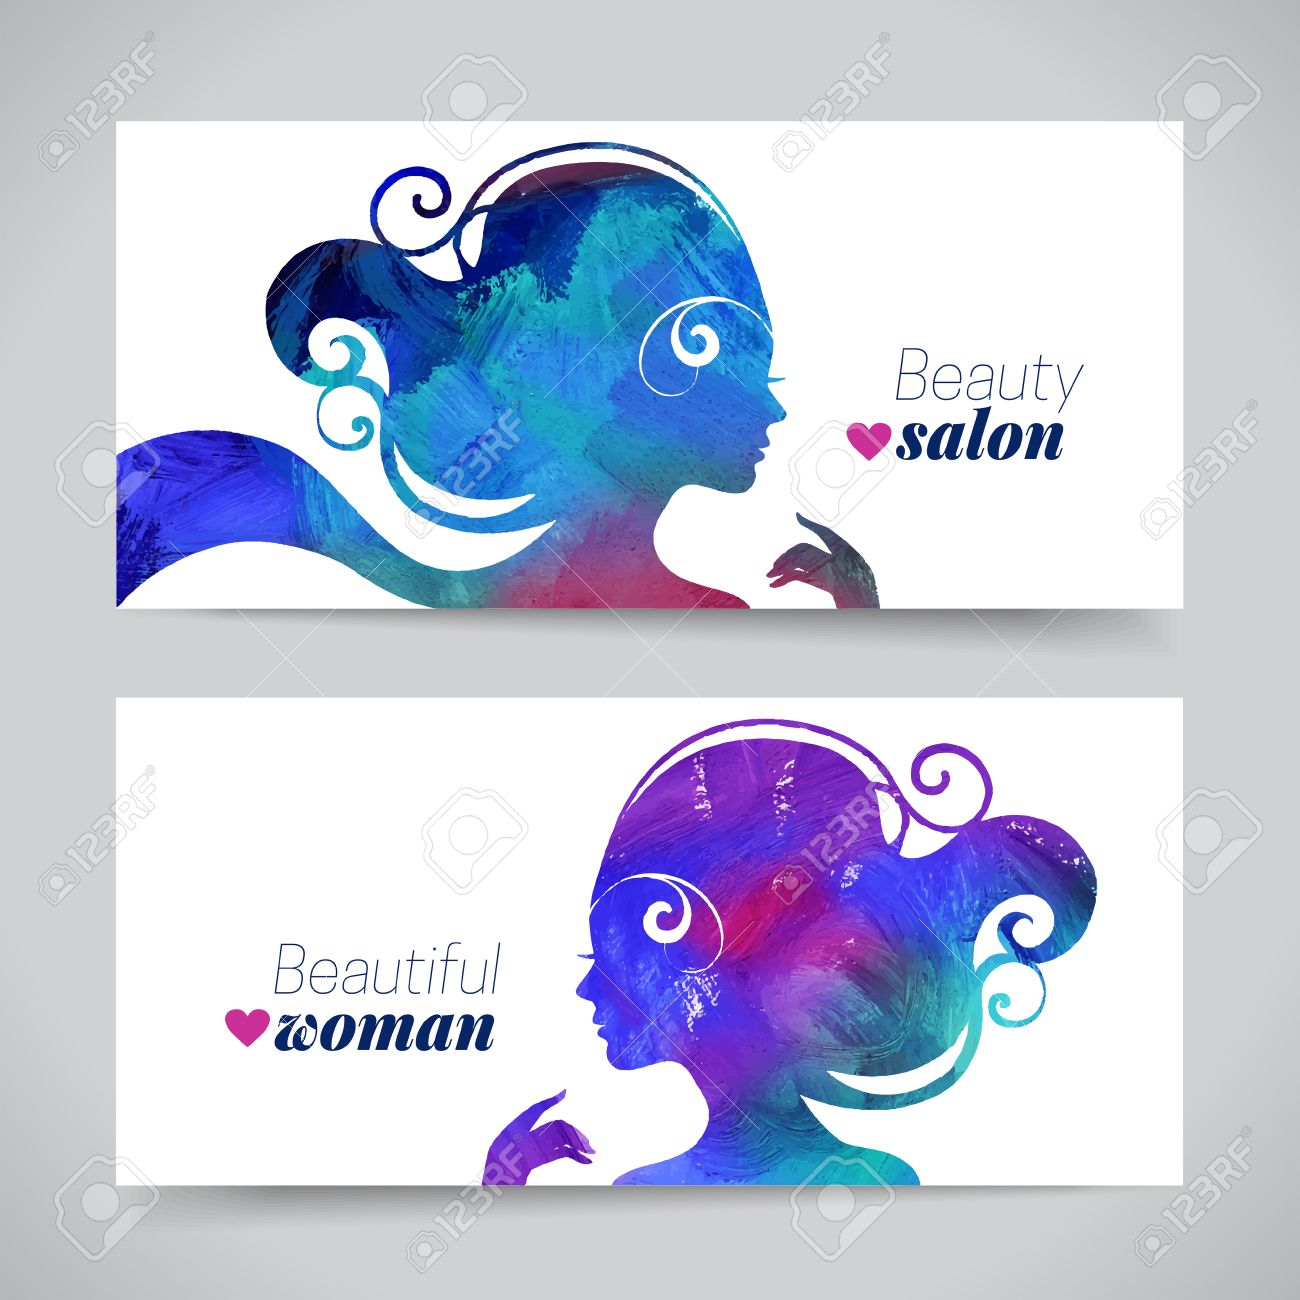 Set of banners with acrylic beautiful girl silhouettes. Vector illustration of painting woman beauty salon design - 36830977